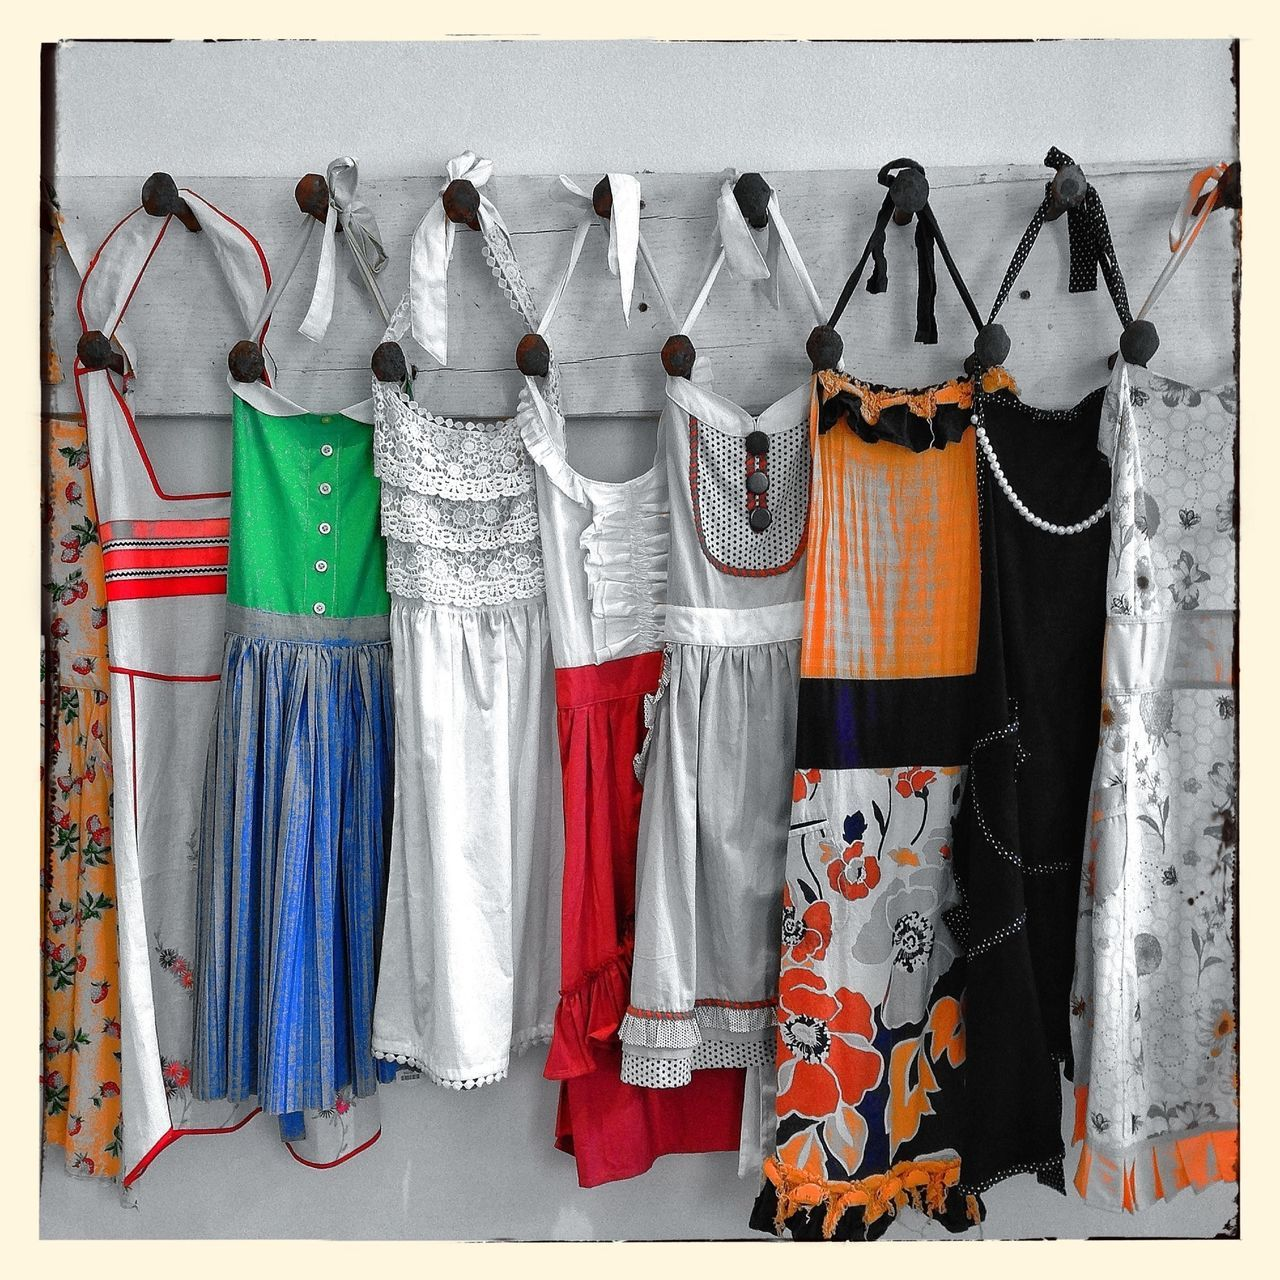 hanging, variation, coathanger, clothing, no people, multi colored, fashion, choice, indoors, large group of objects, day